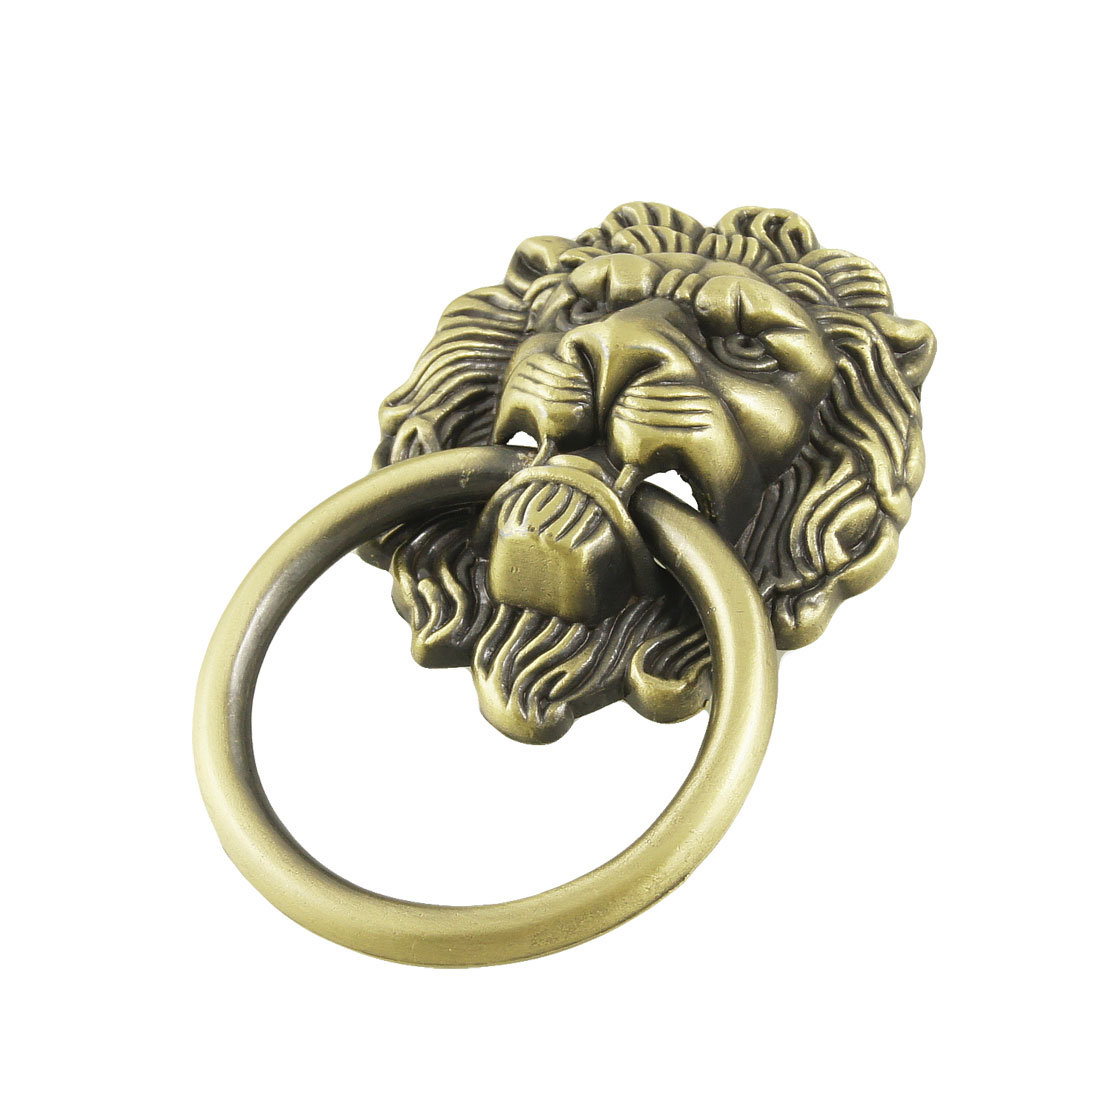 Antique Style Bronze Lion Head Design Drawer Ring Pull Handle Knob